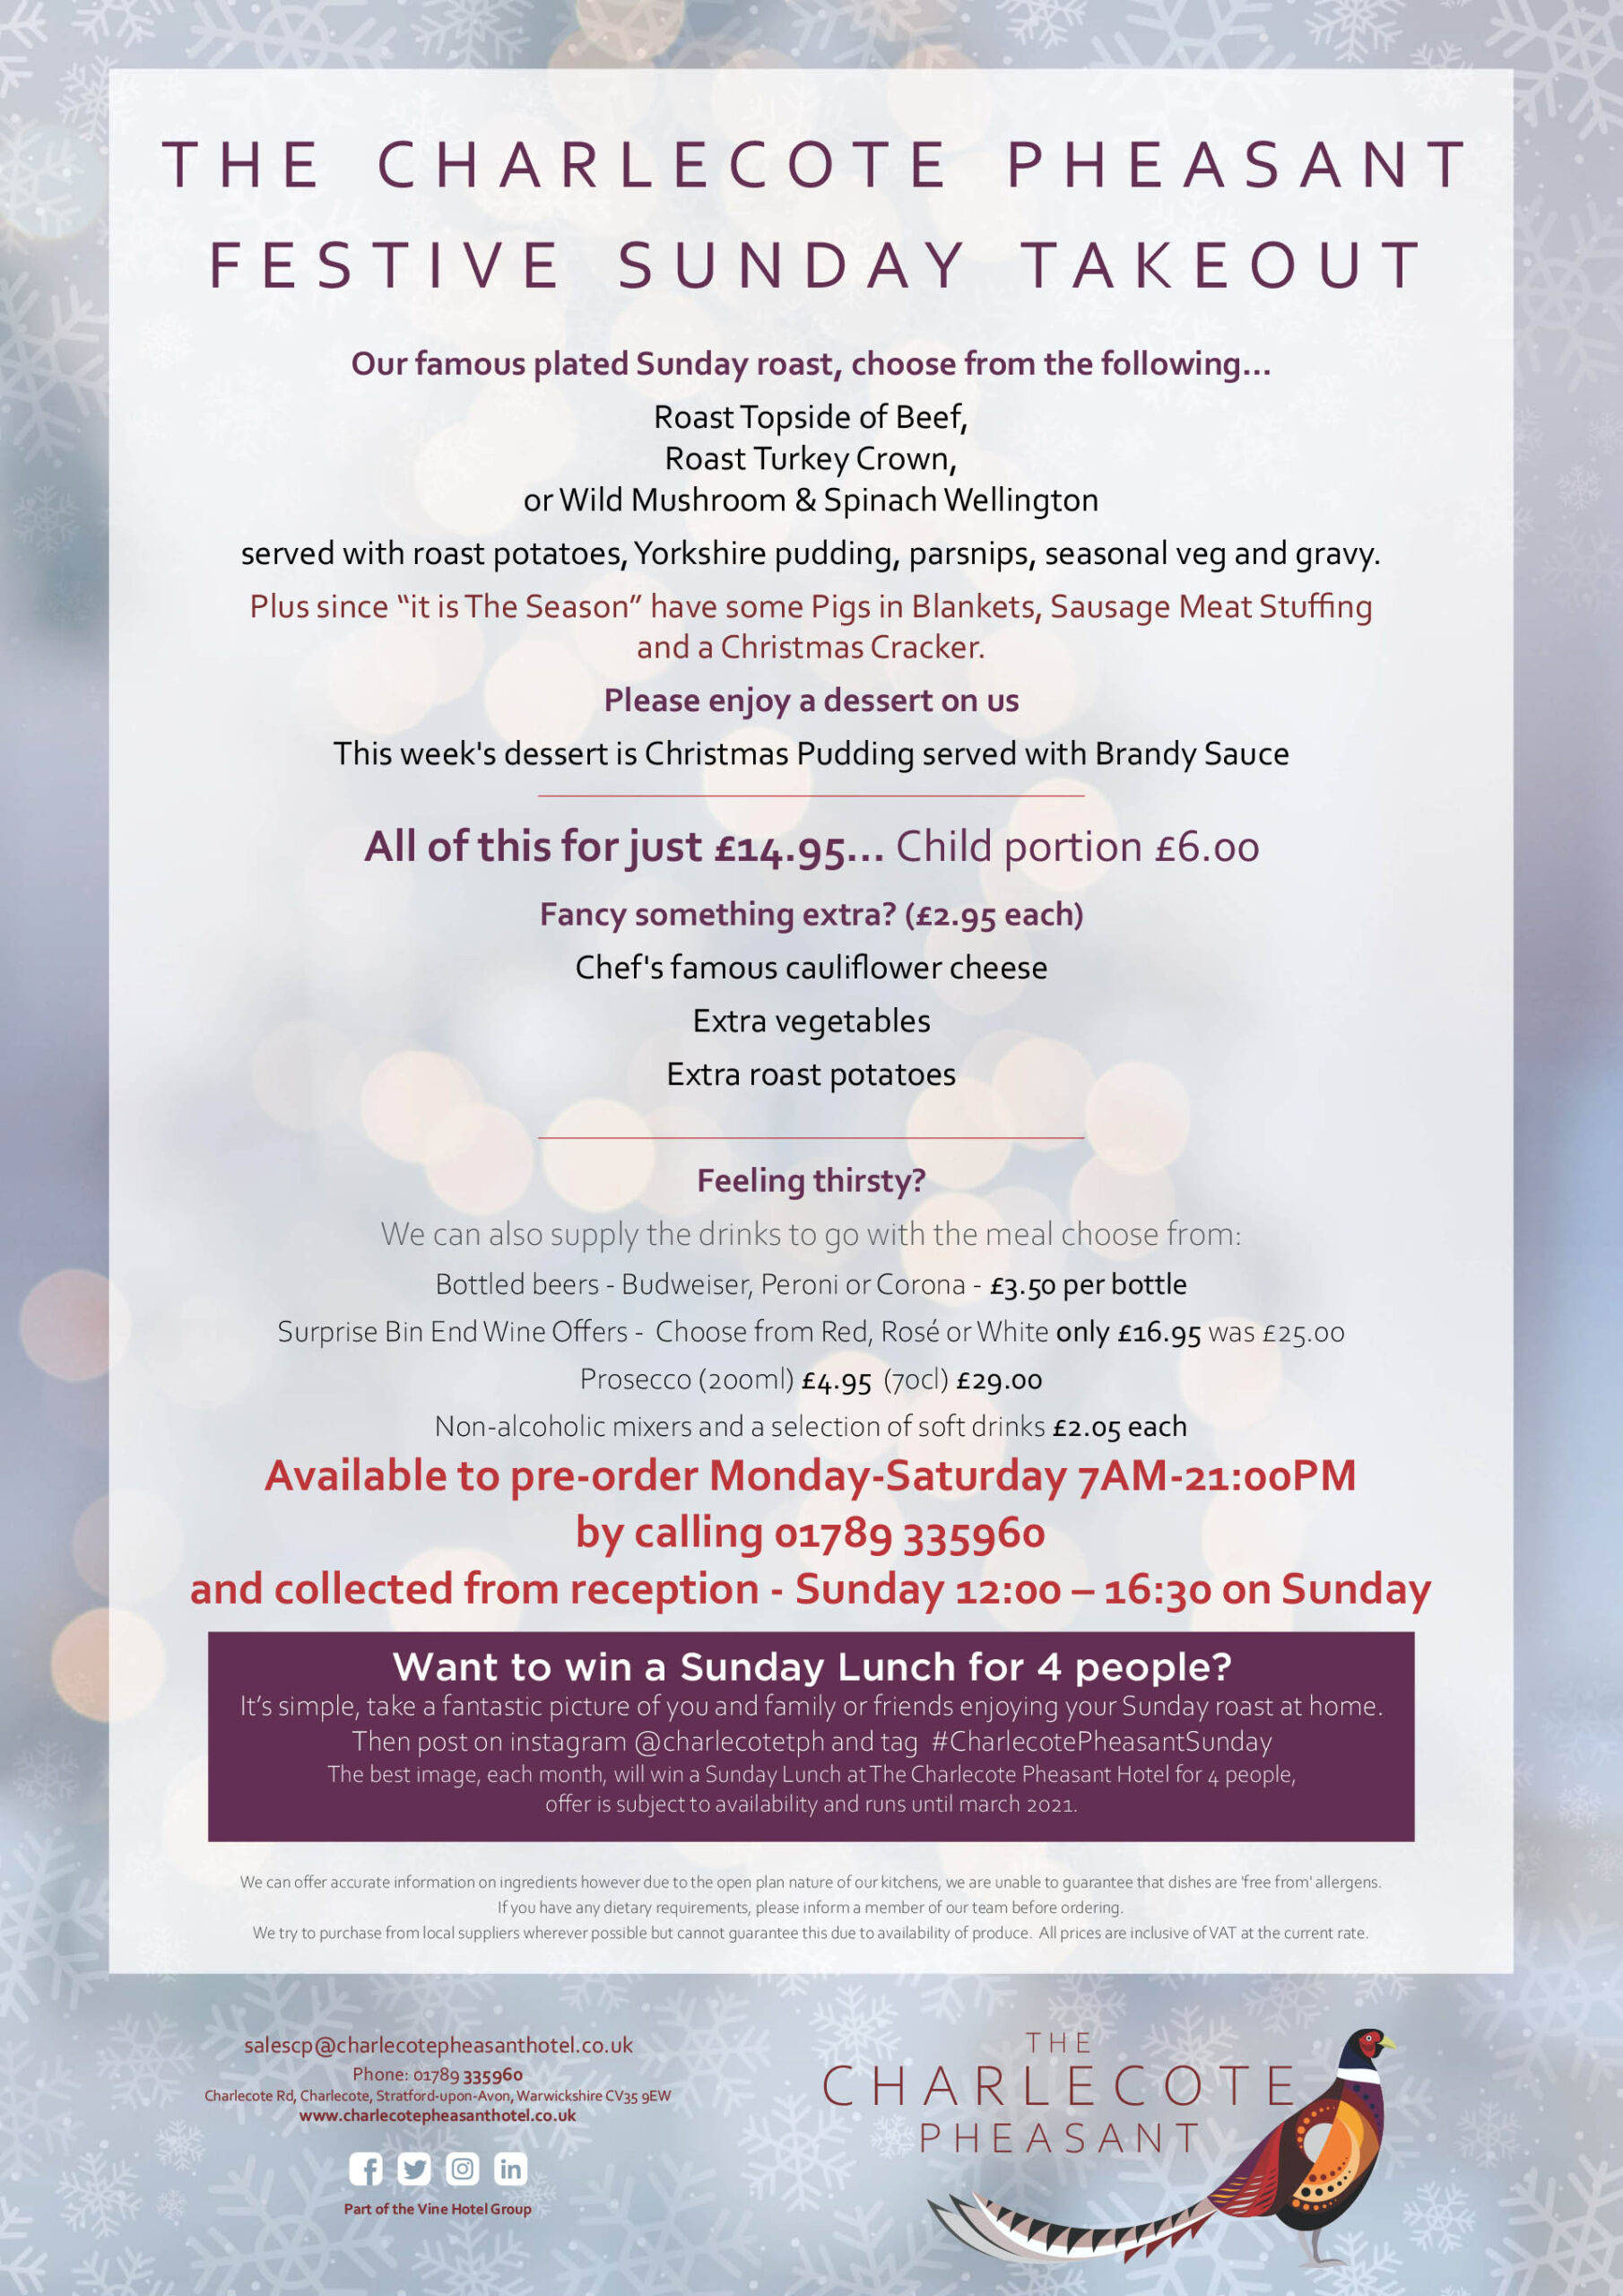 The Charlecote Pheasant Hotel Festive Sunday Takeout Menu 4